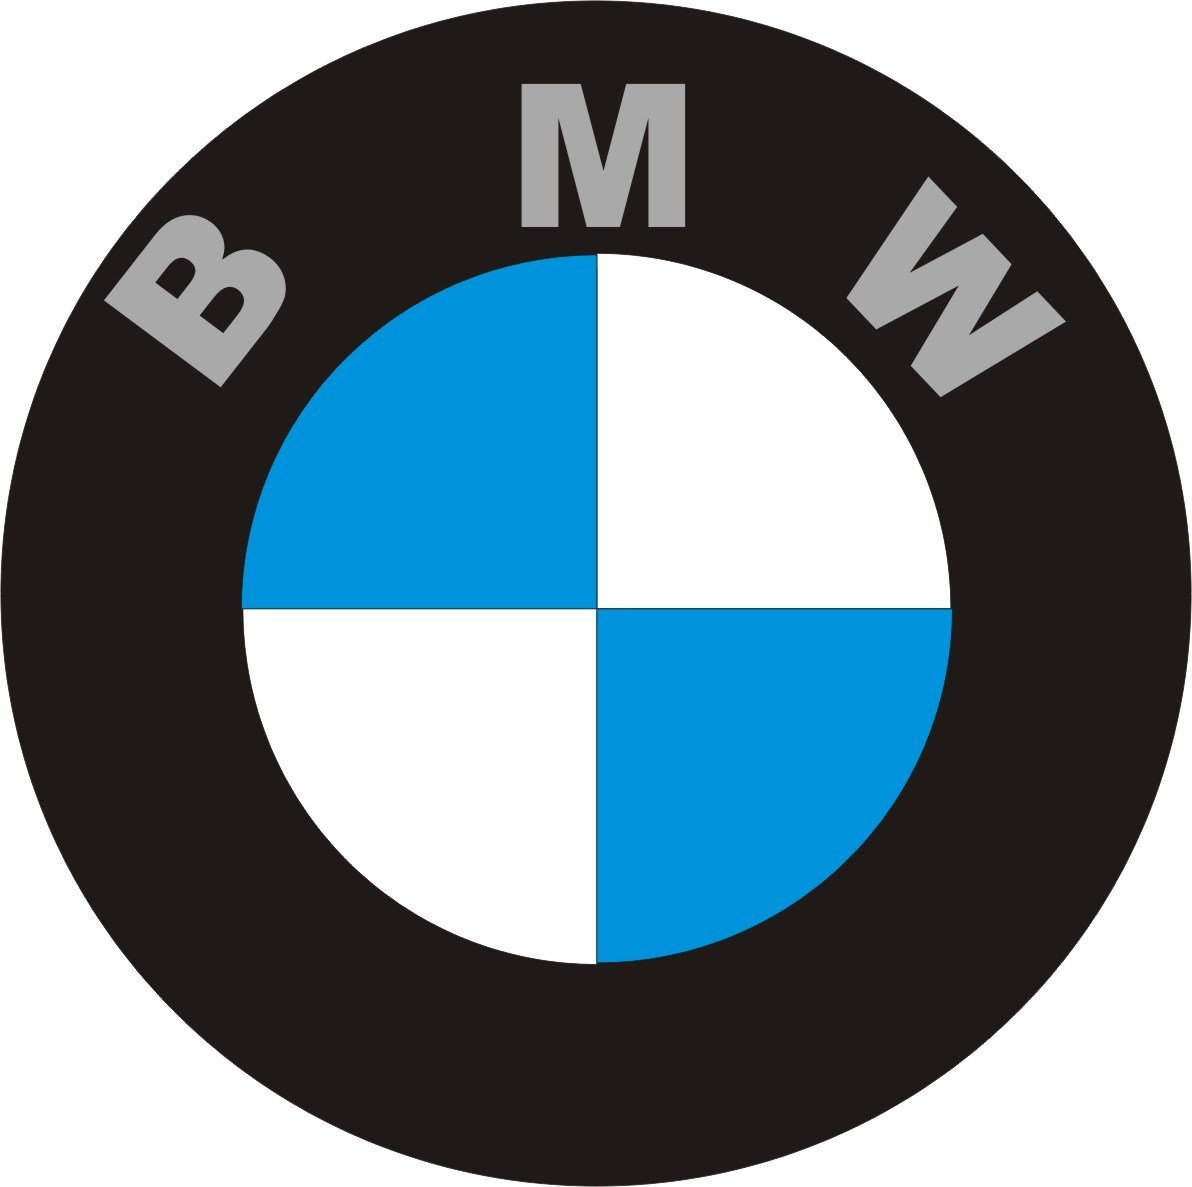 Latest Bmw Logo Bmw Car Symbol Meaning Emblem Of Car Brand Free Download